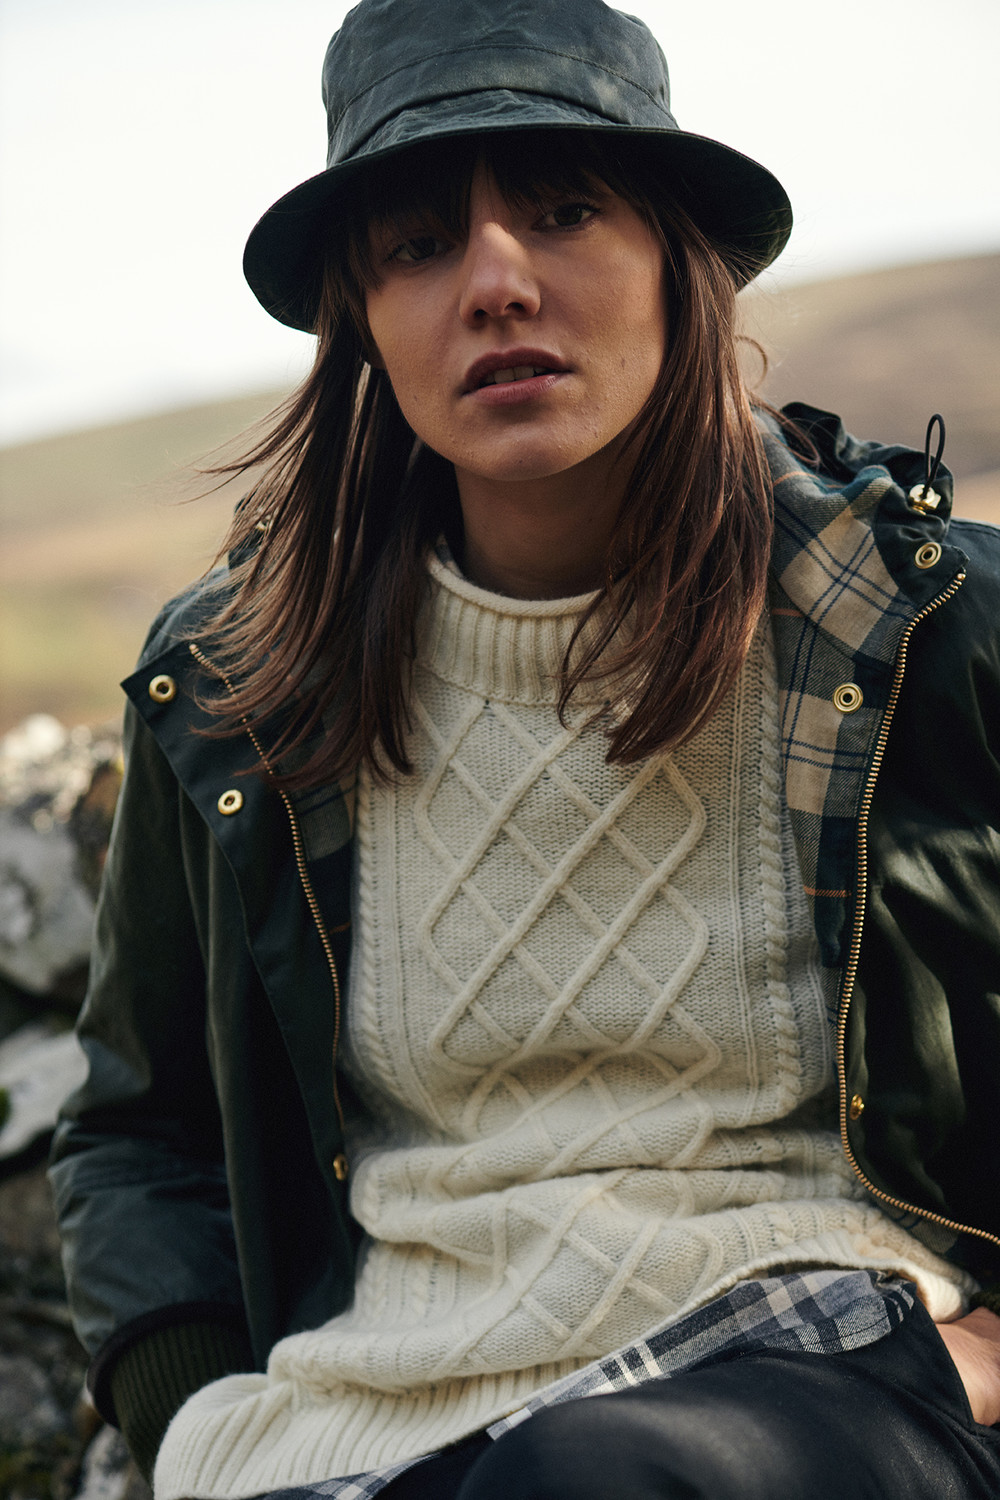 AW19_Barbour Modern Country_Wood Warbler Wax Jacket_LWX0975GN72_Tyneside Knit_LKN0973CR71_72dpi_RGB _9_.jpg